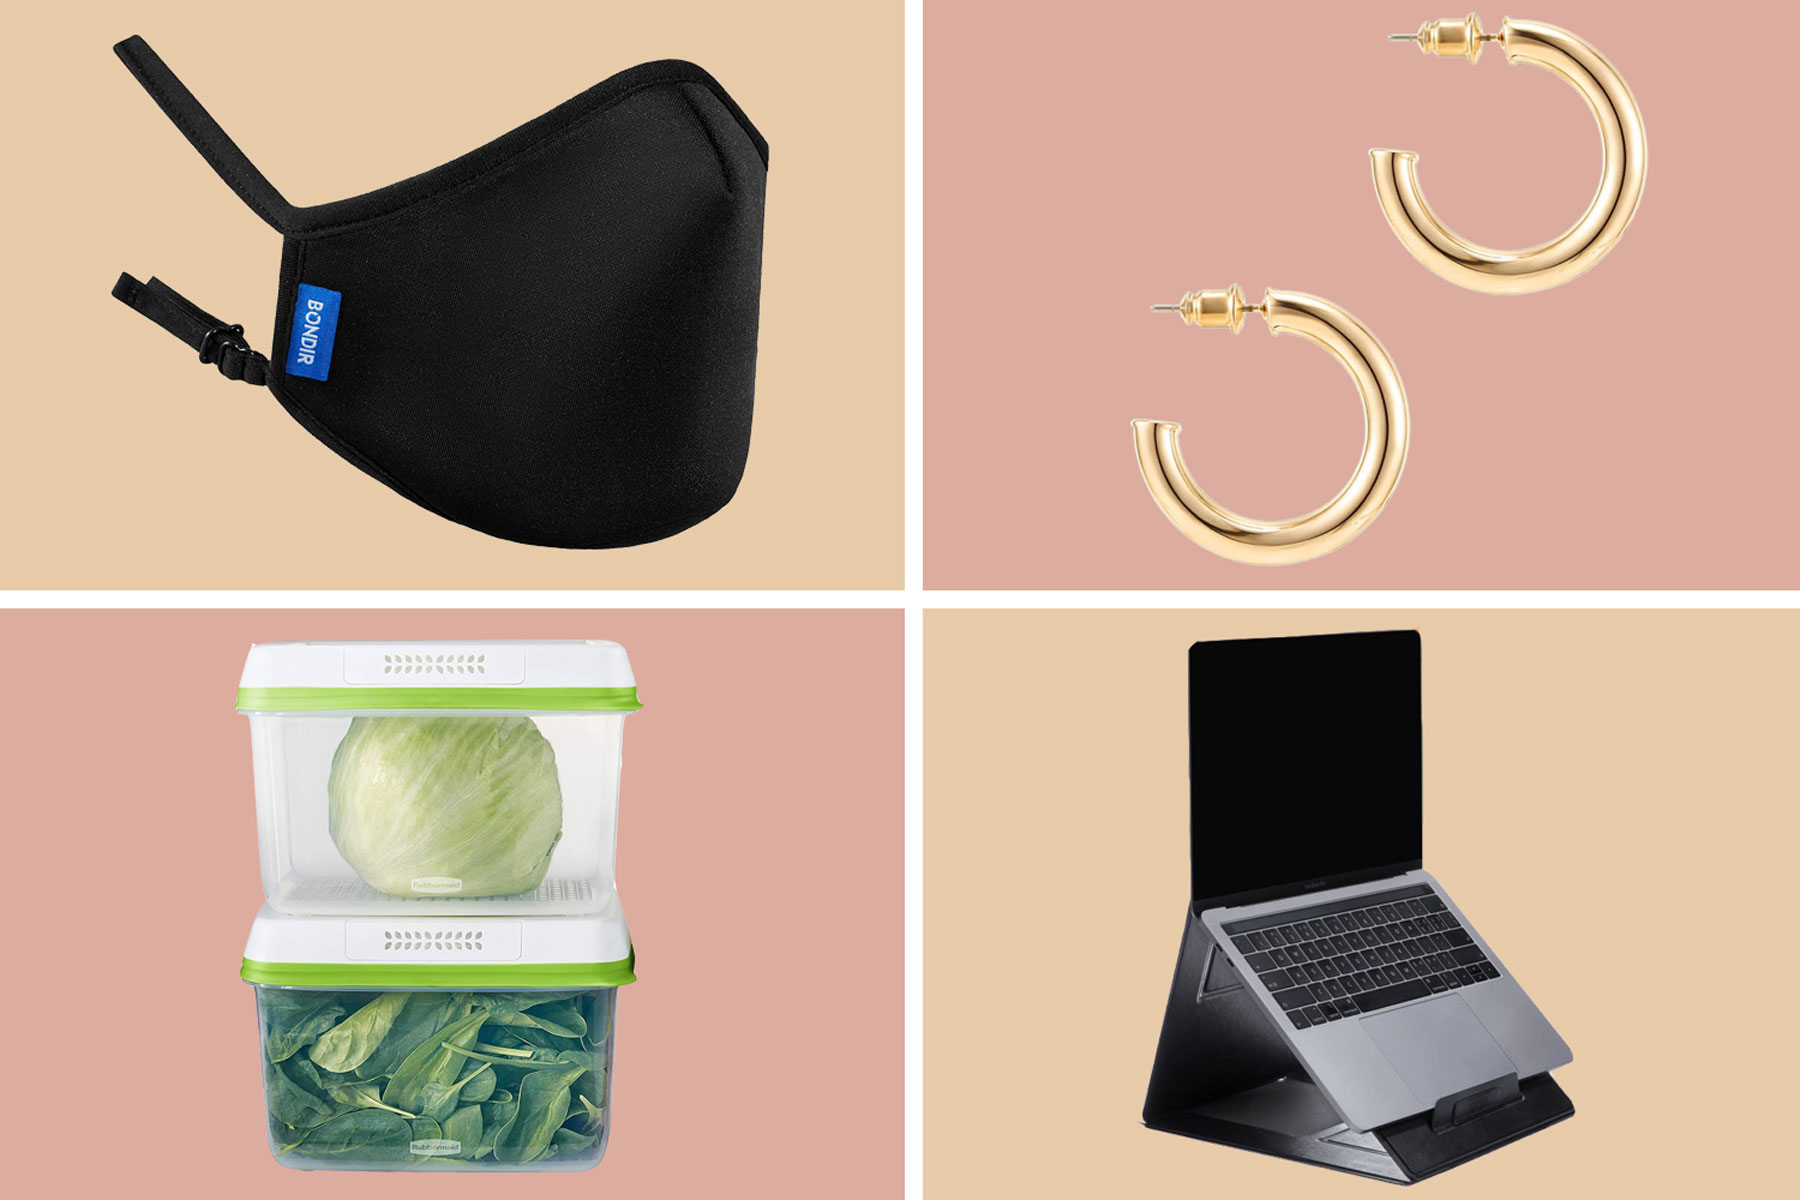 Black face mask, gold hoop earrings, clear food containers, and grey laptop stand